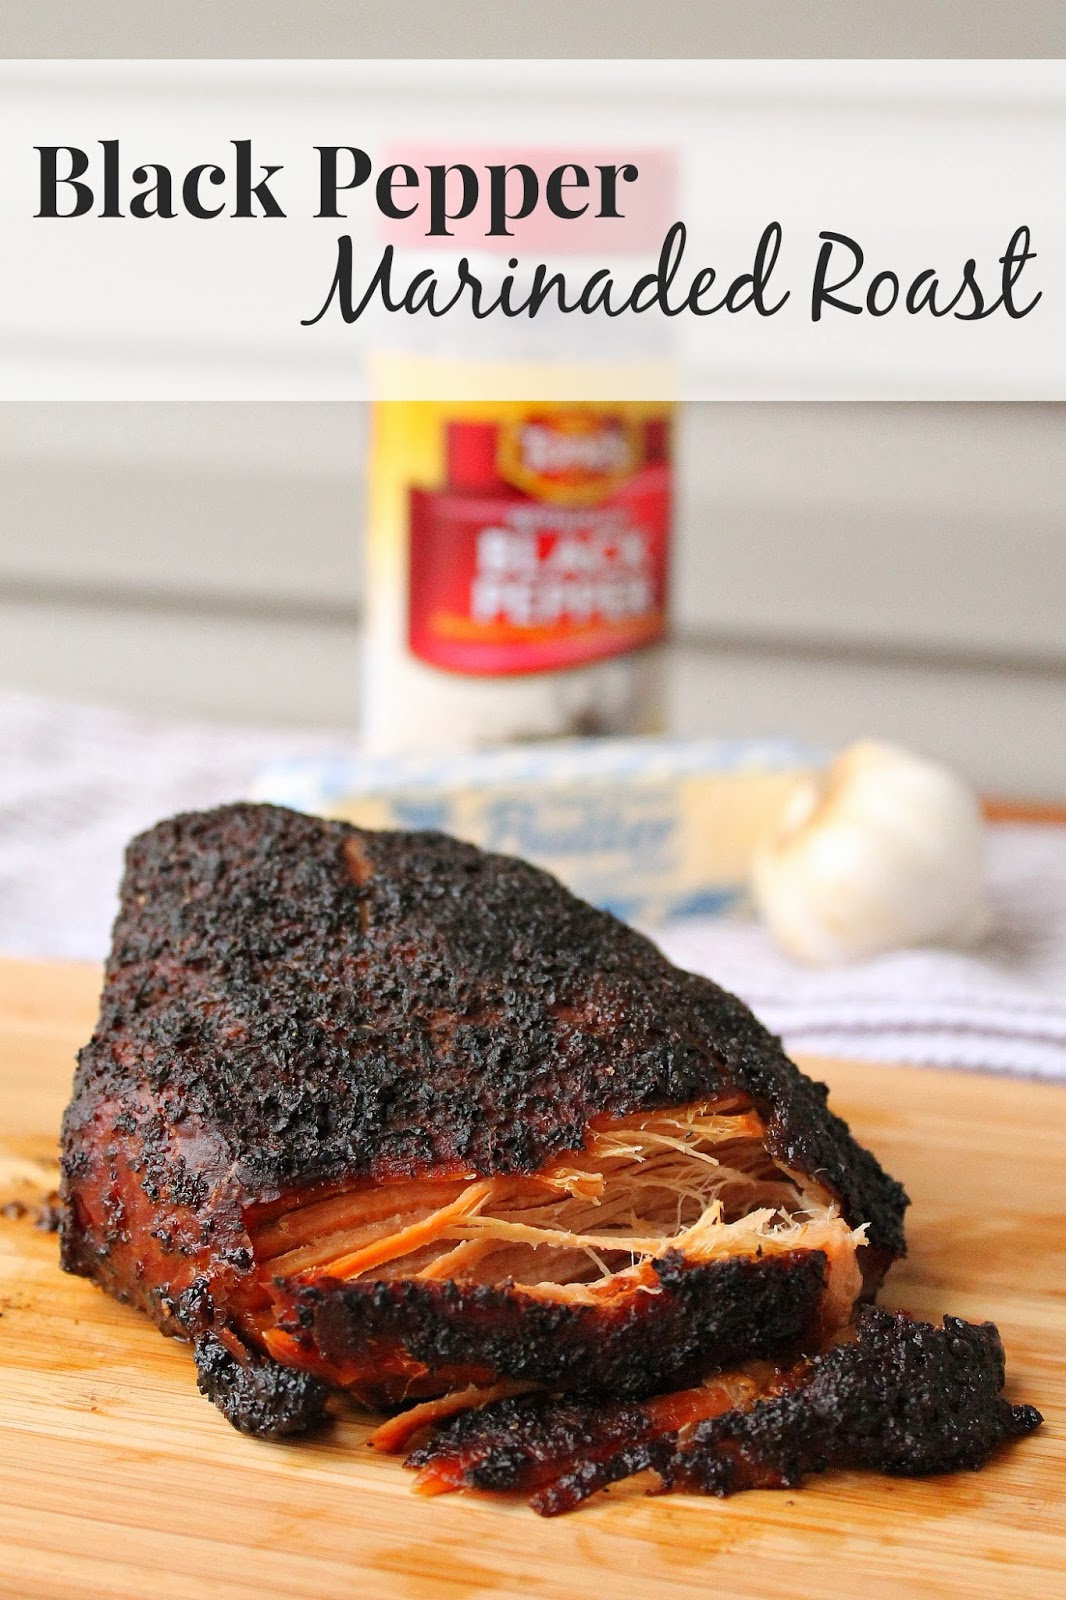 Black Pepper Marinaded Roast via @labride